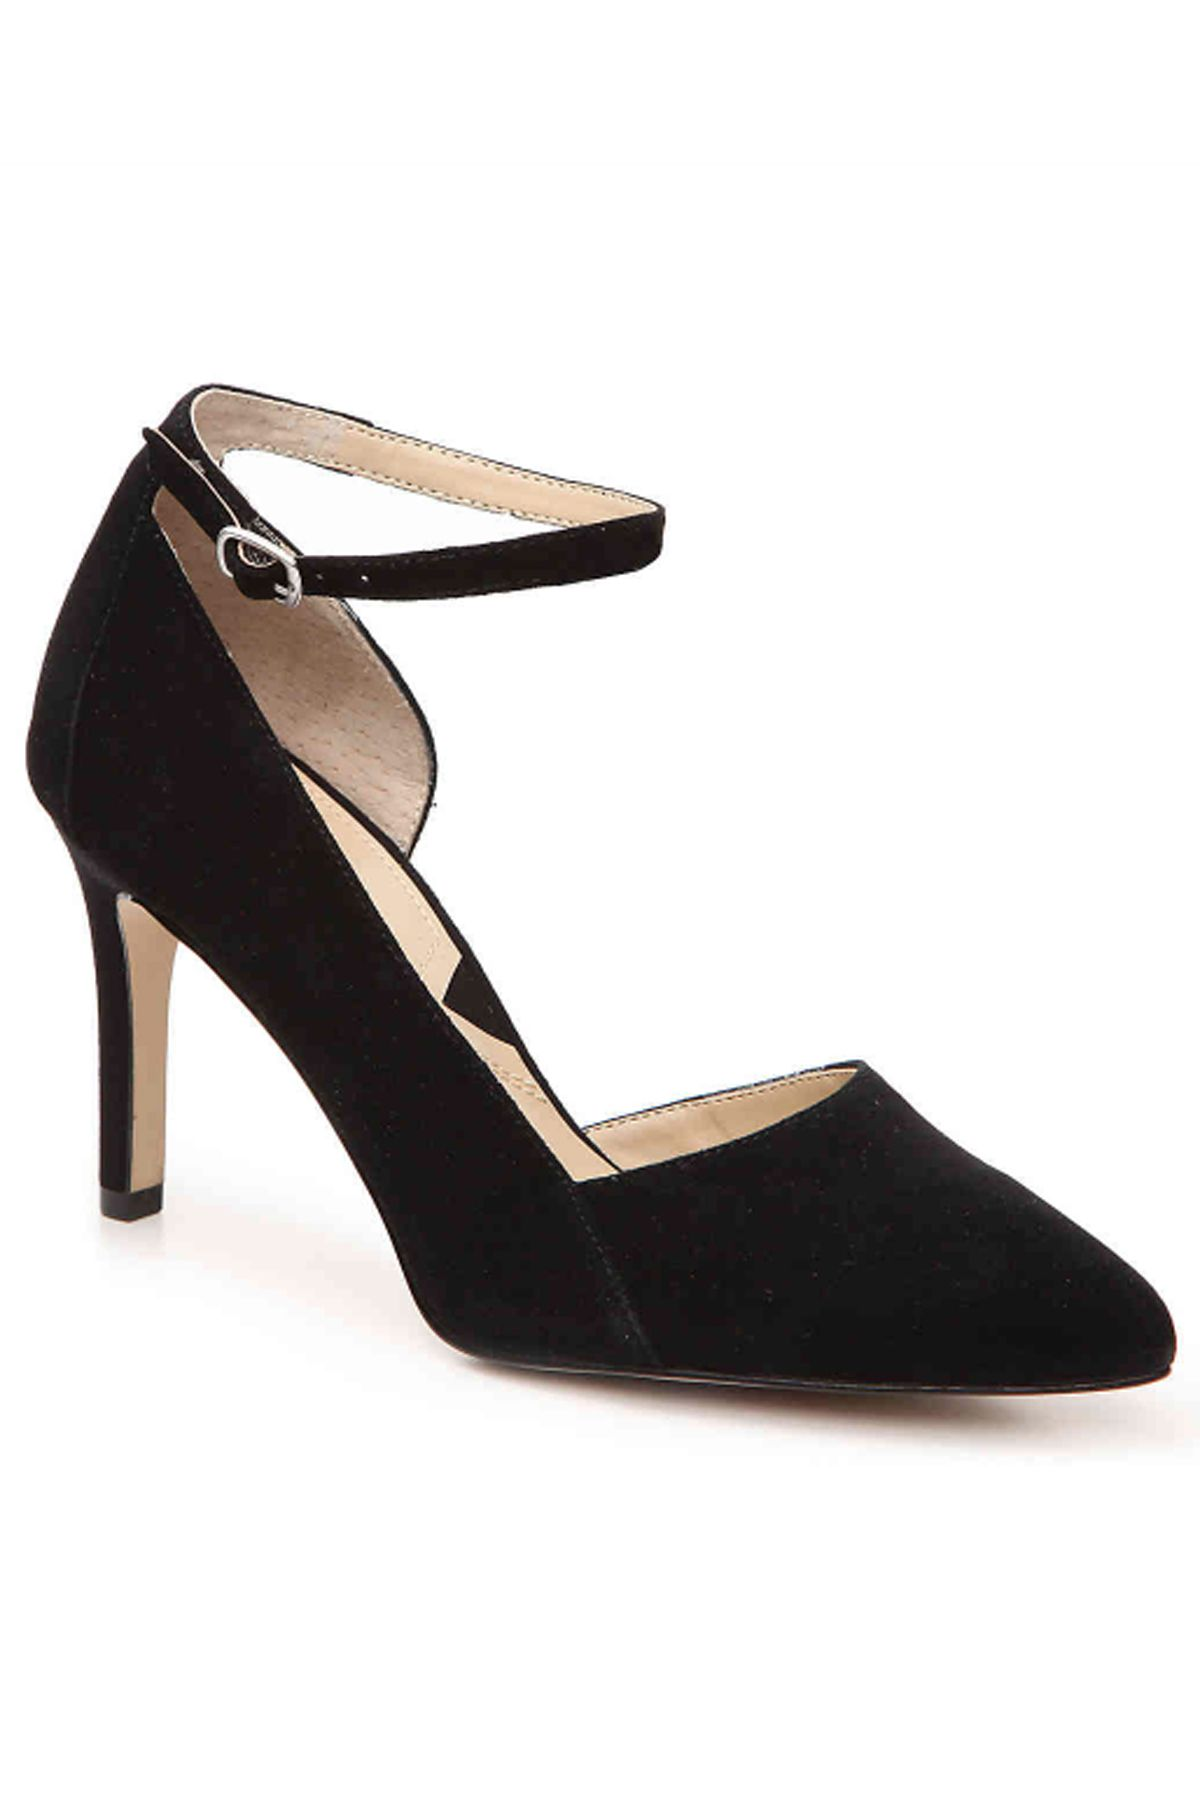 black christian pumps endeavors bianca louboutin my so superficial love in comfortable most comforter